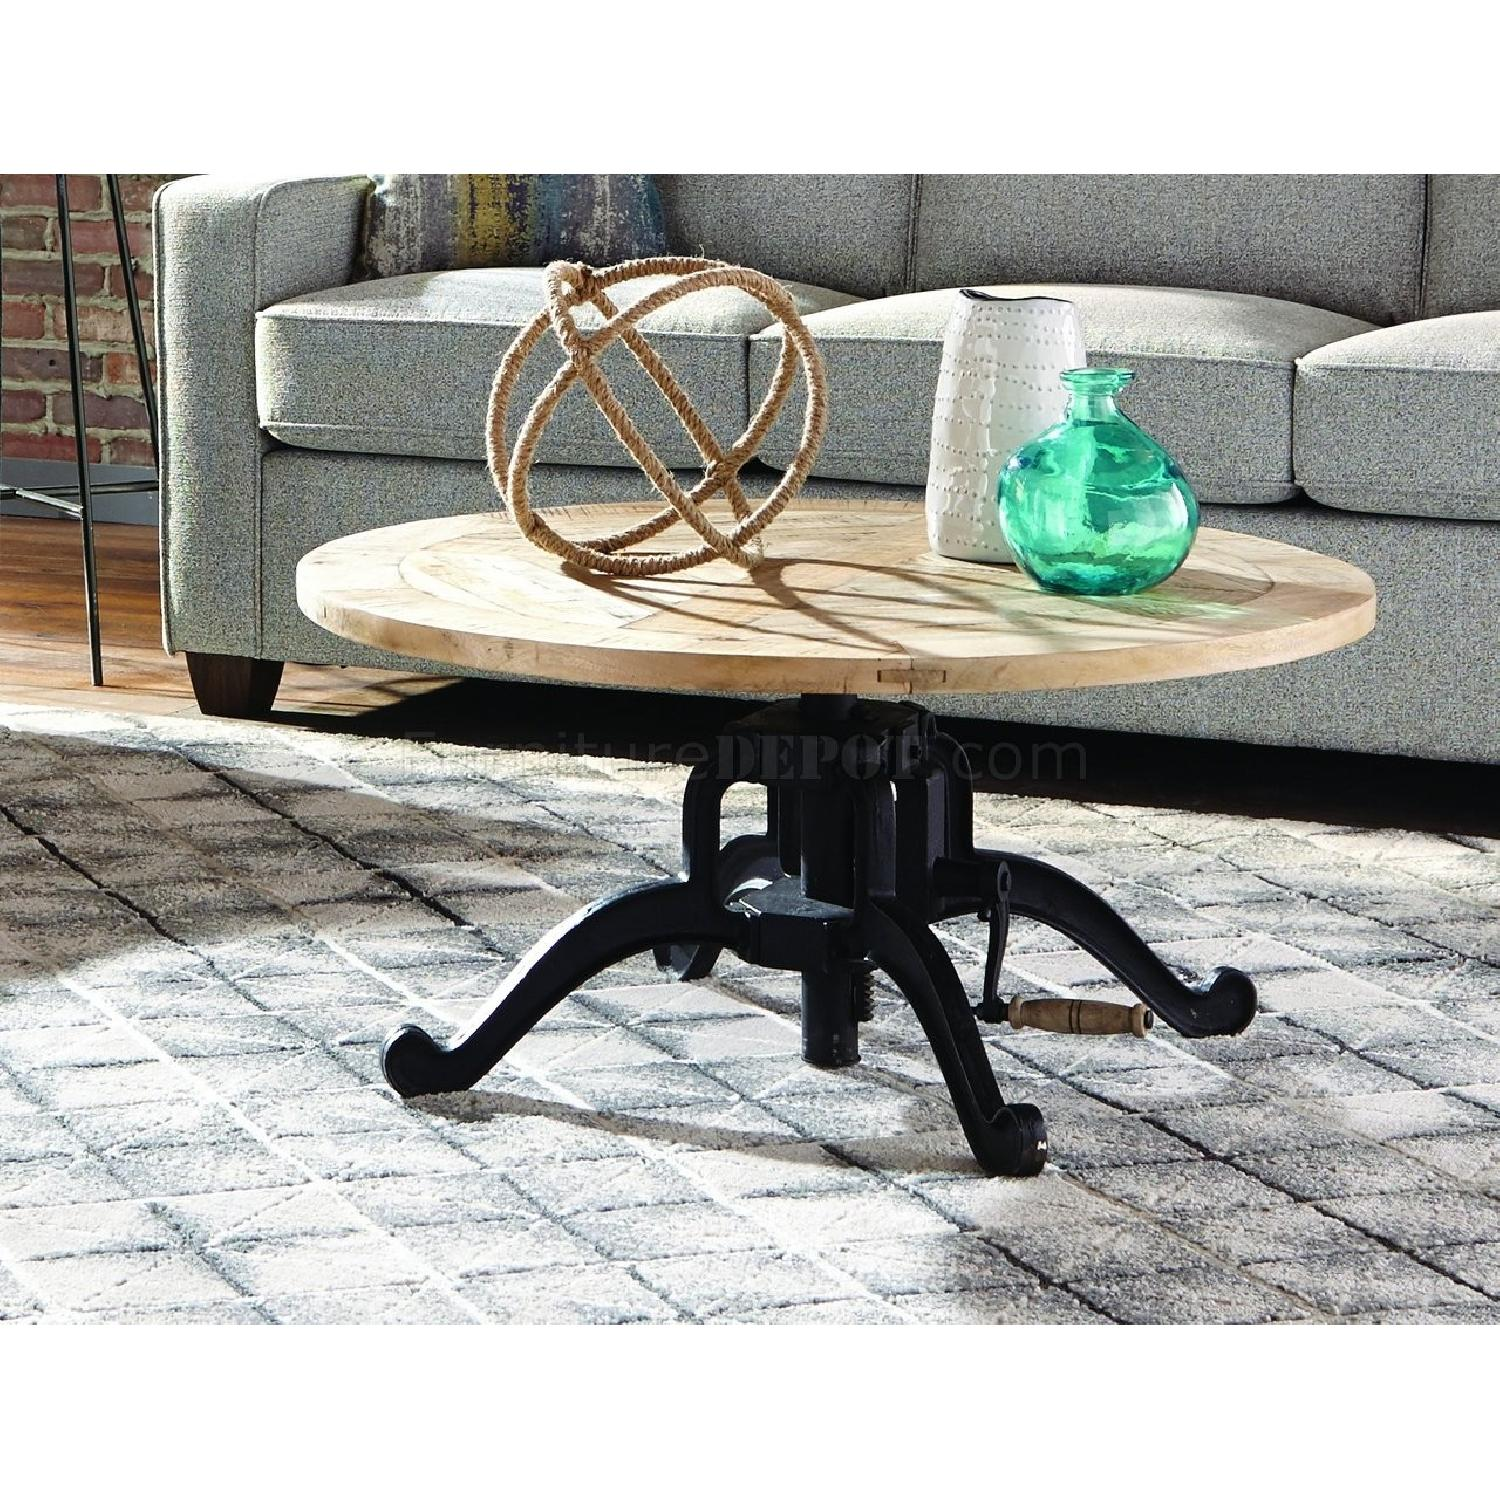 Natural Wood Top Coffee Table w/ Decorative Legs